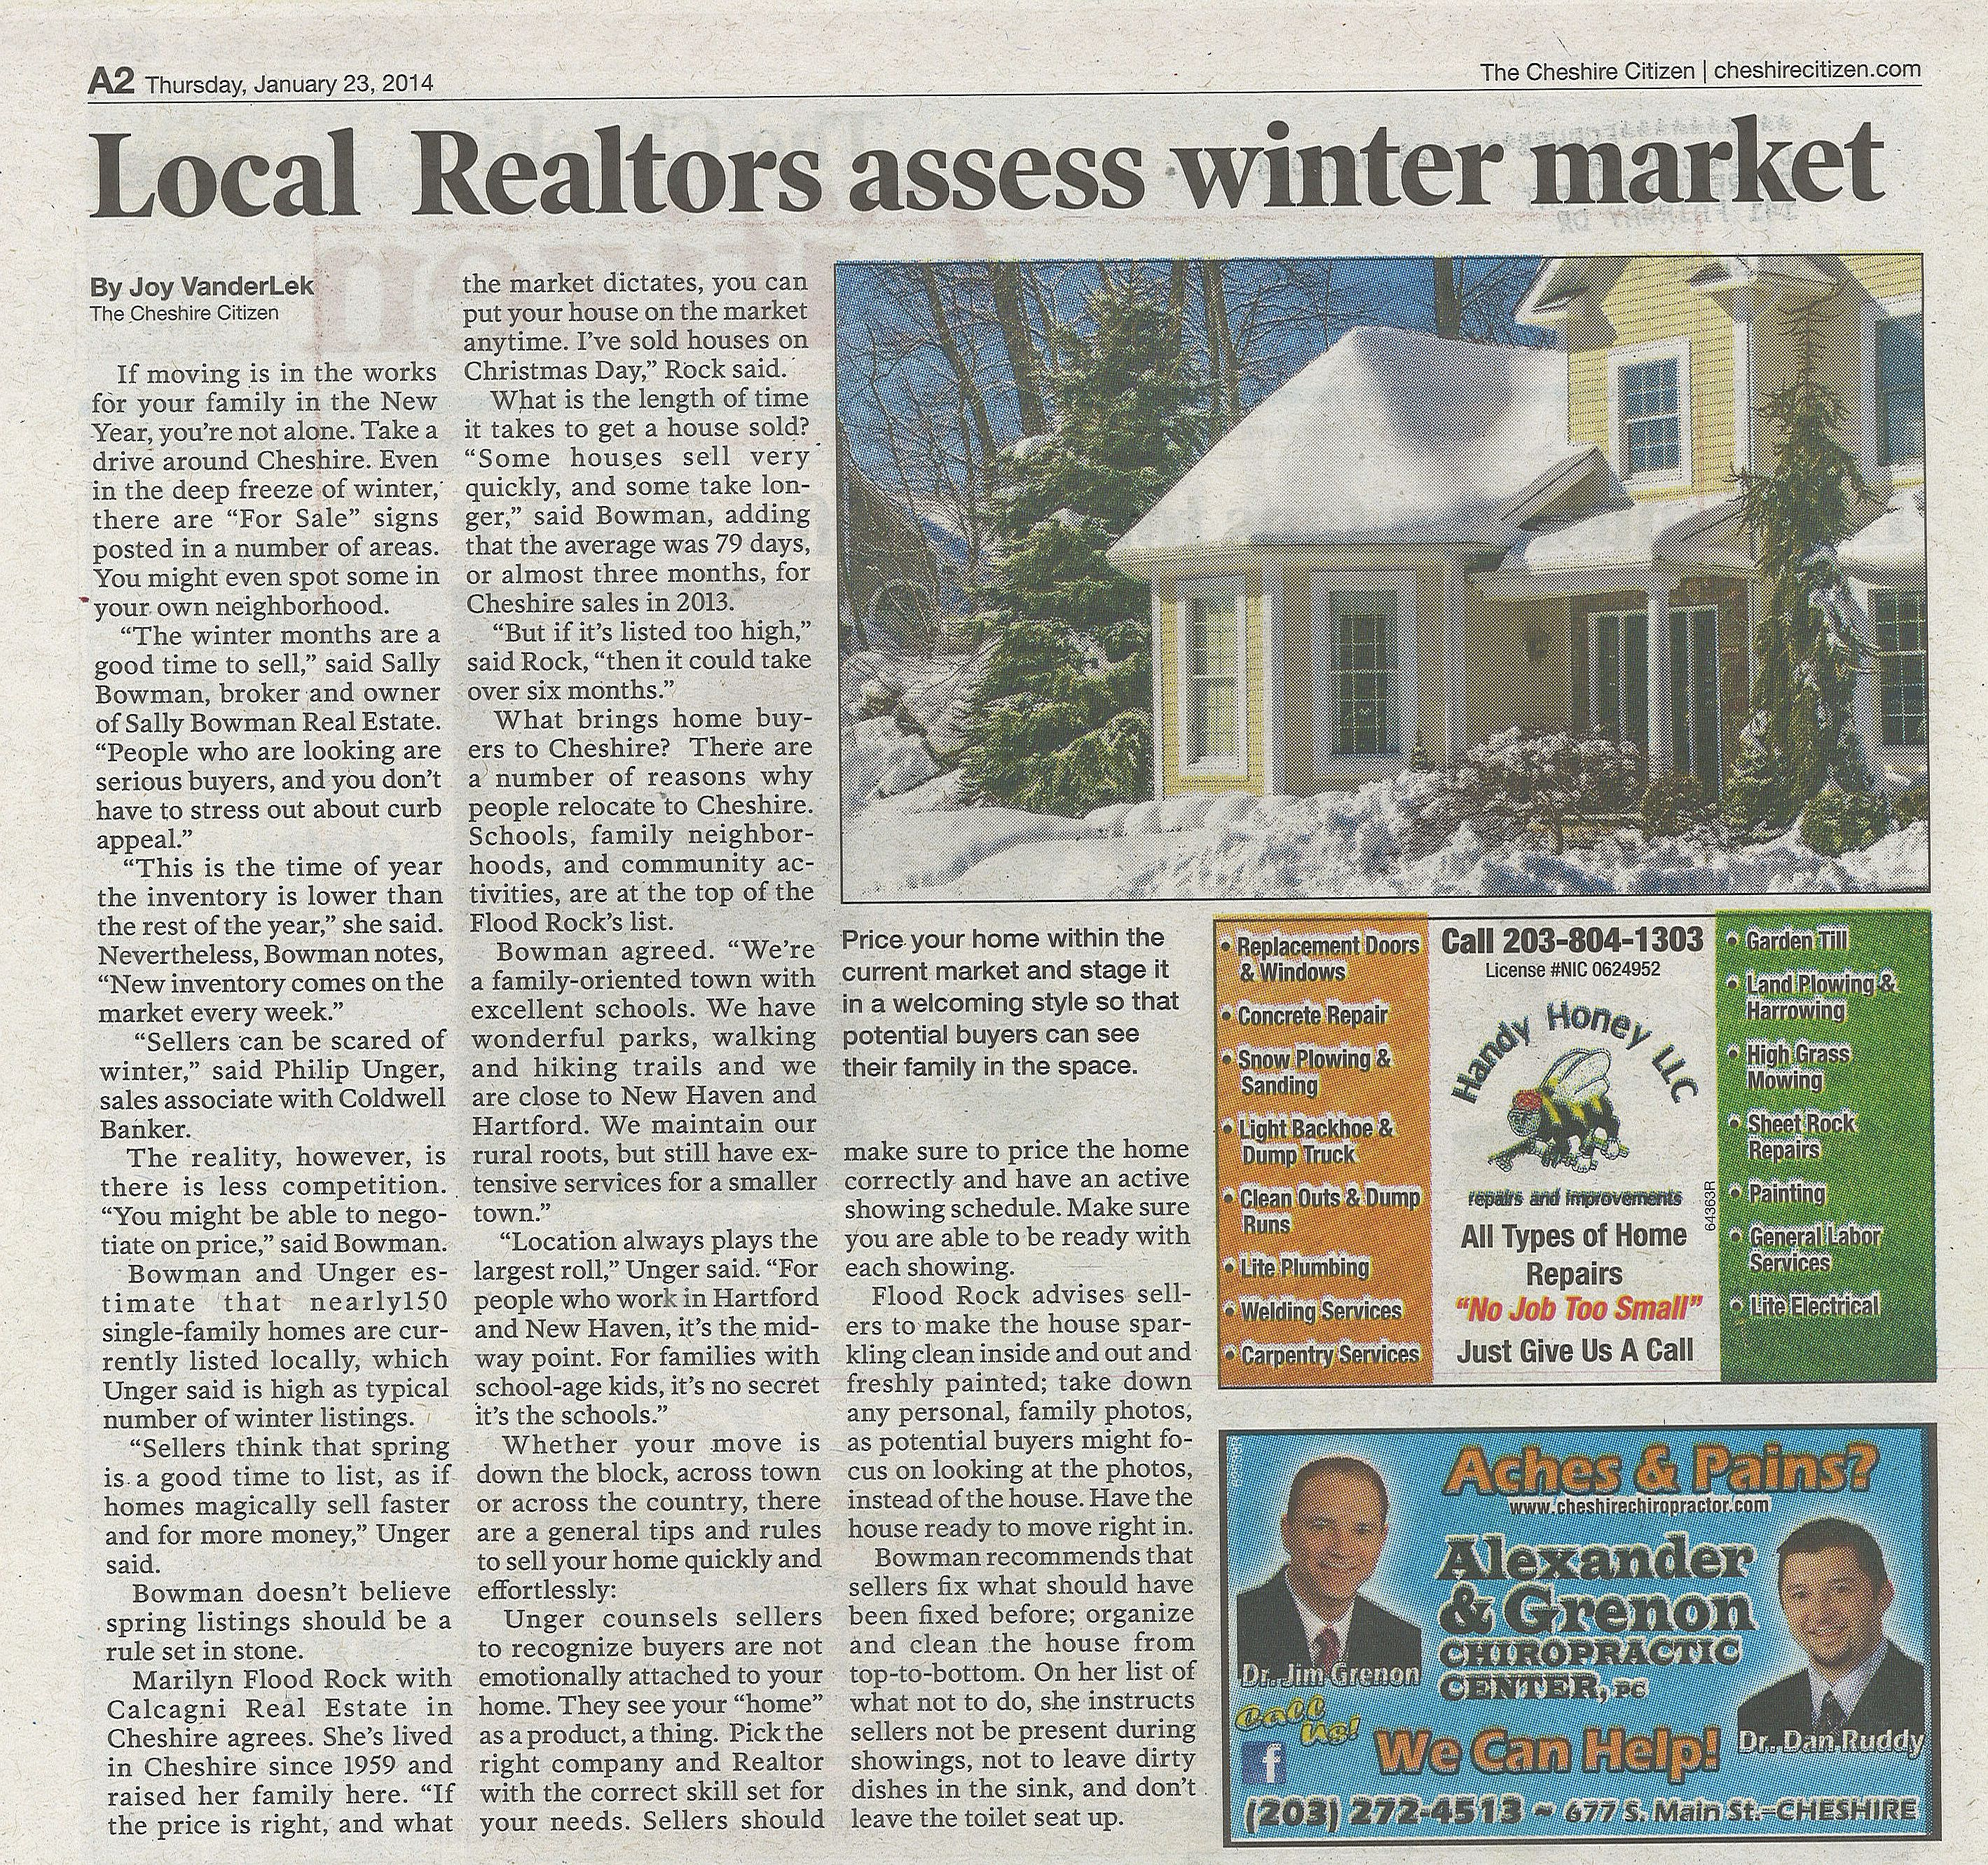 Cheshire Citizen Article- 1-23-14